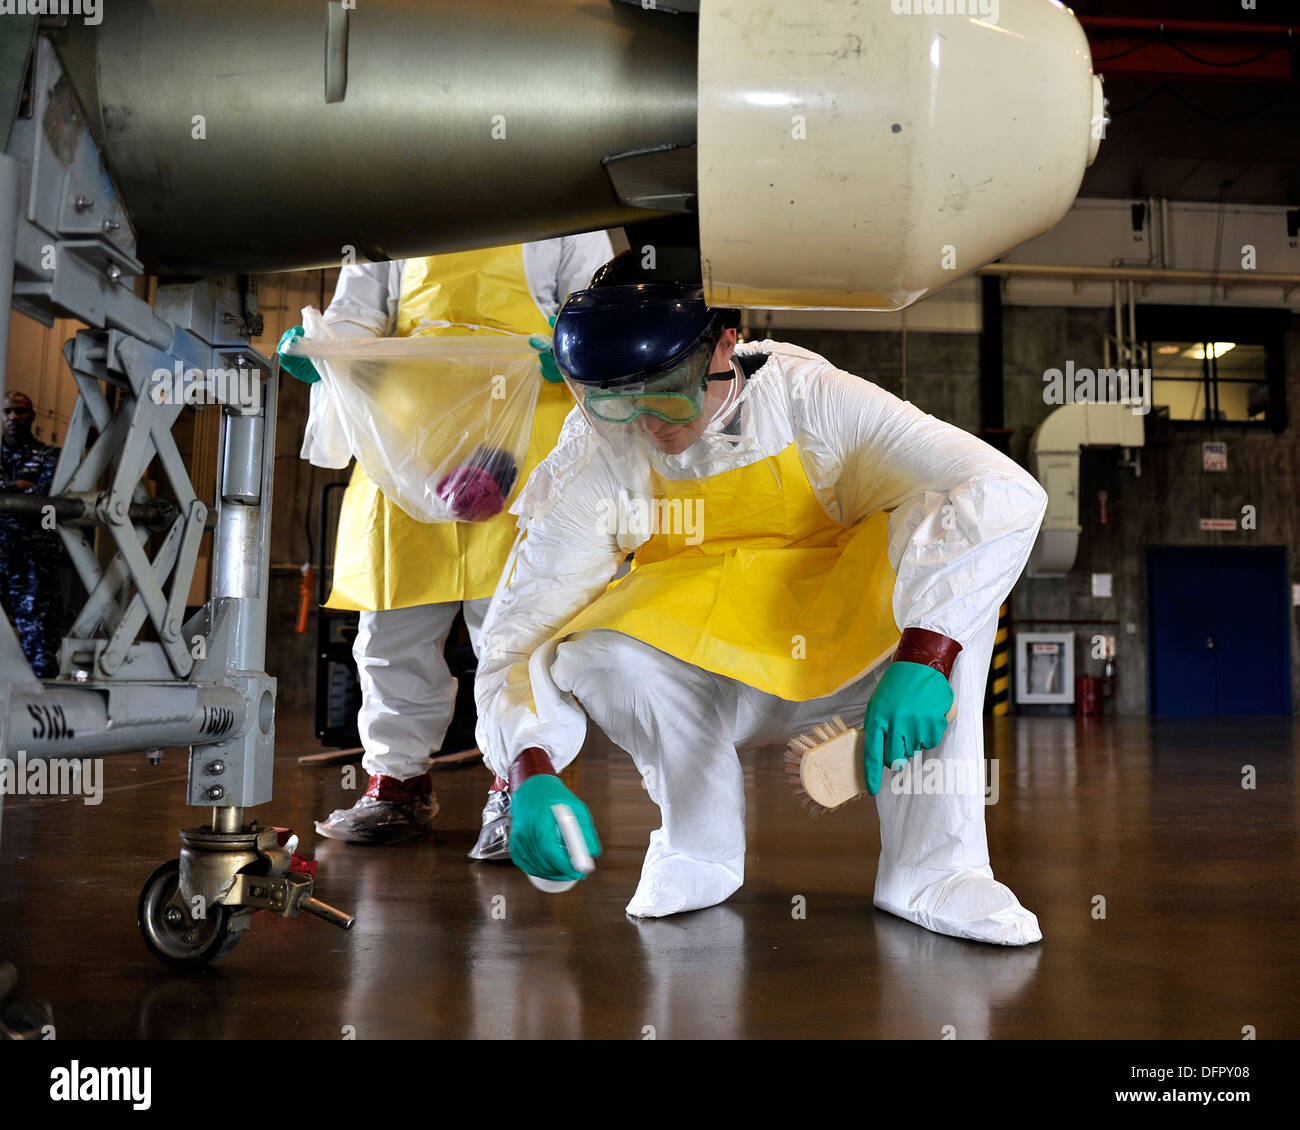 MISAWA AIR BASE, Japan (Sept. 26, 2013) Damage Controlman 2nd Class Jerrett Hurtt, originally from Humboldt, Ariz., cleans up a - Stock Image